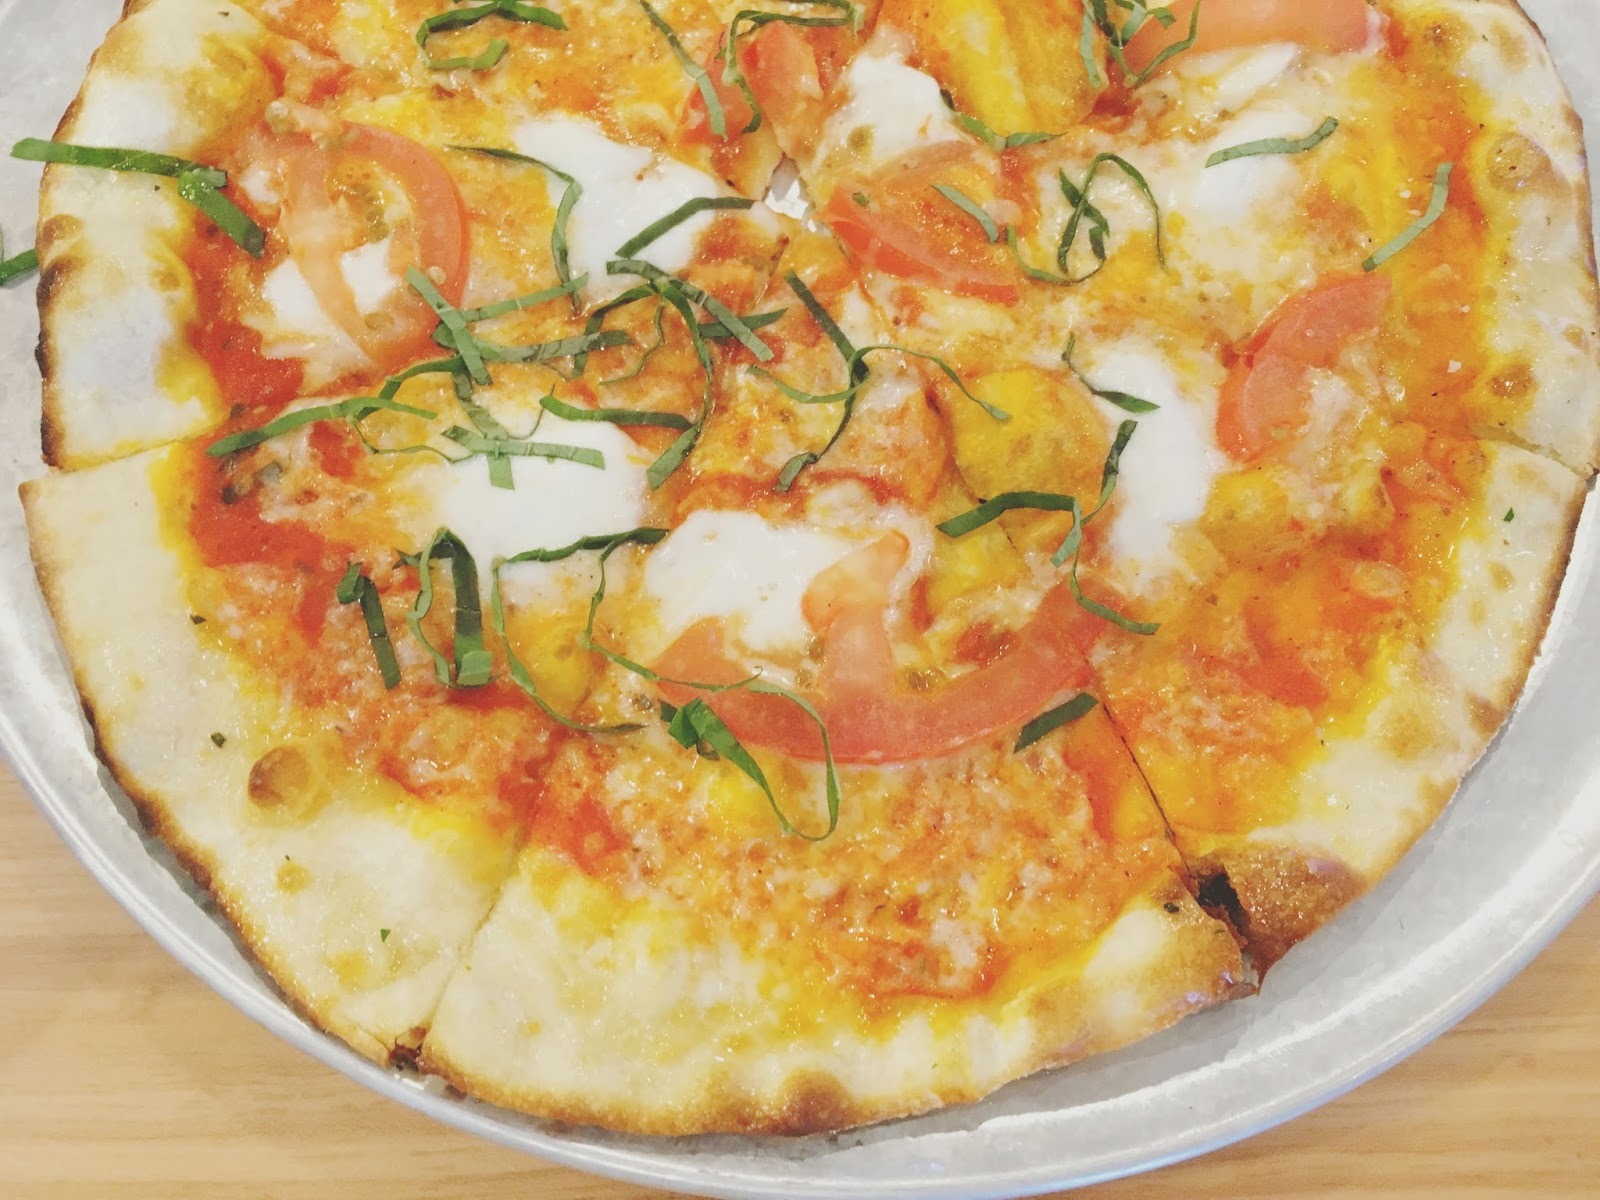 margherita pizza at H.S. Green - A healthy restaurant in Houston, Texas